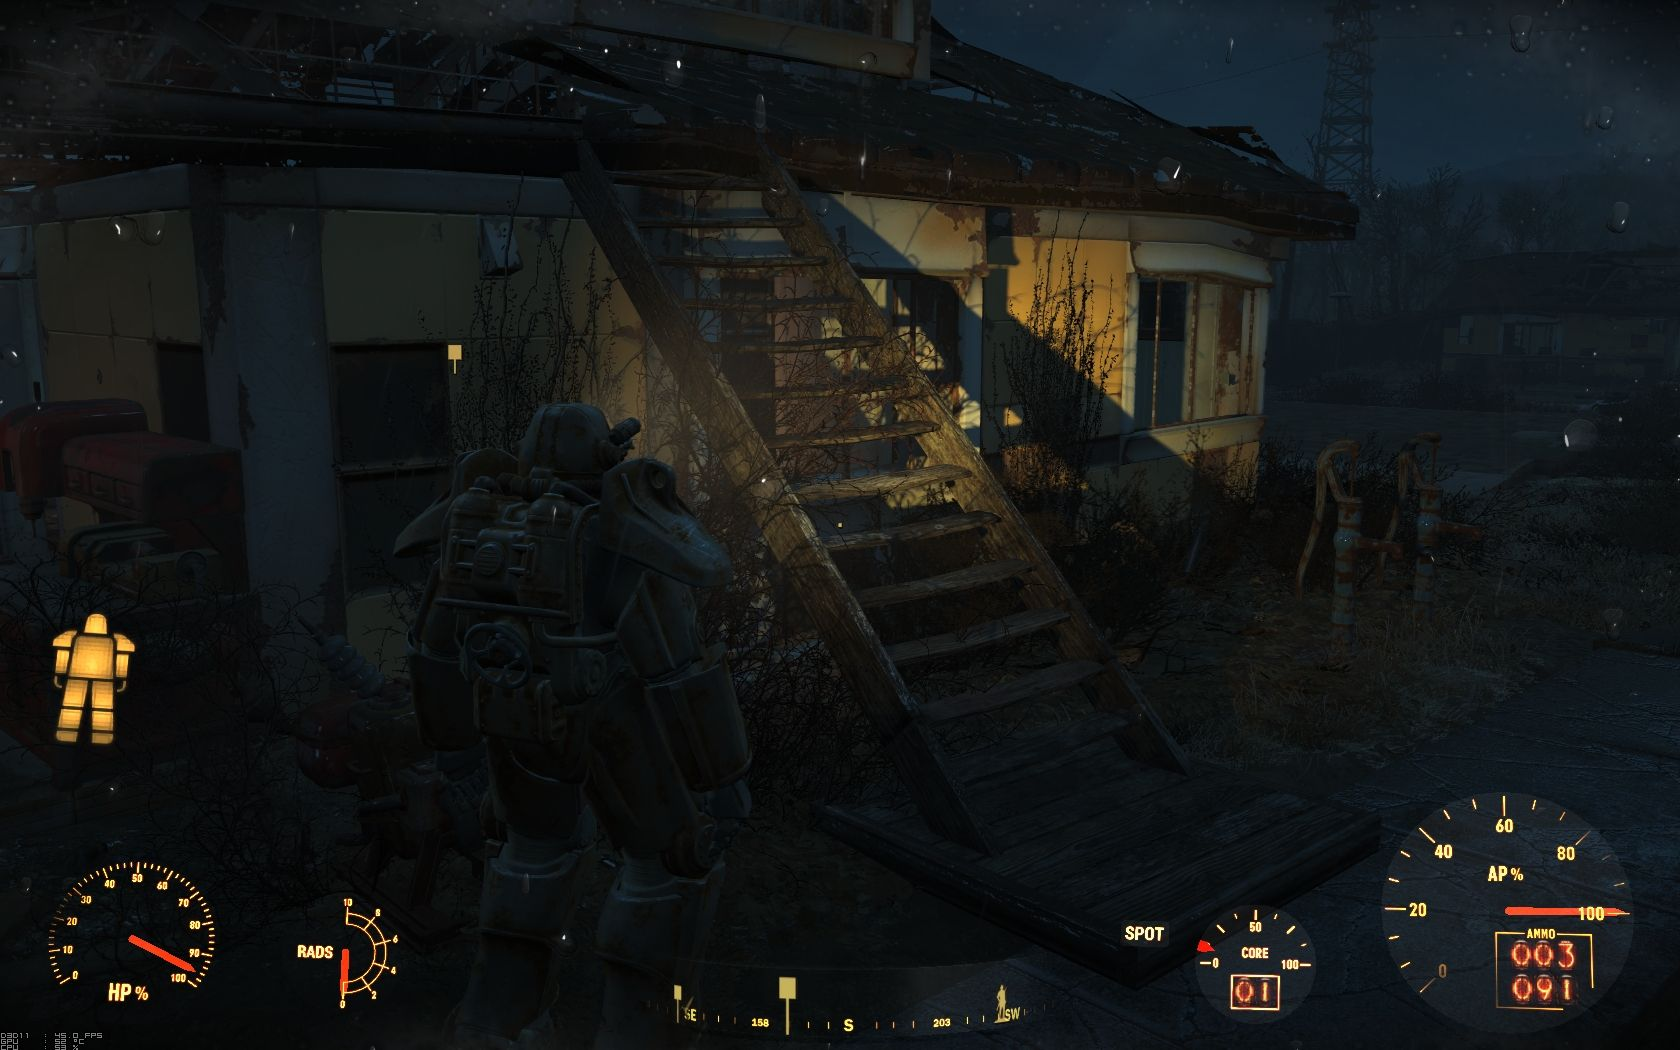 How To Use Wall Lights Fallout 4 : PipBoyShadows at Fallout 4 Nexus - Mods and community